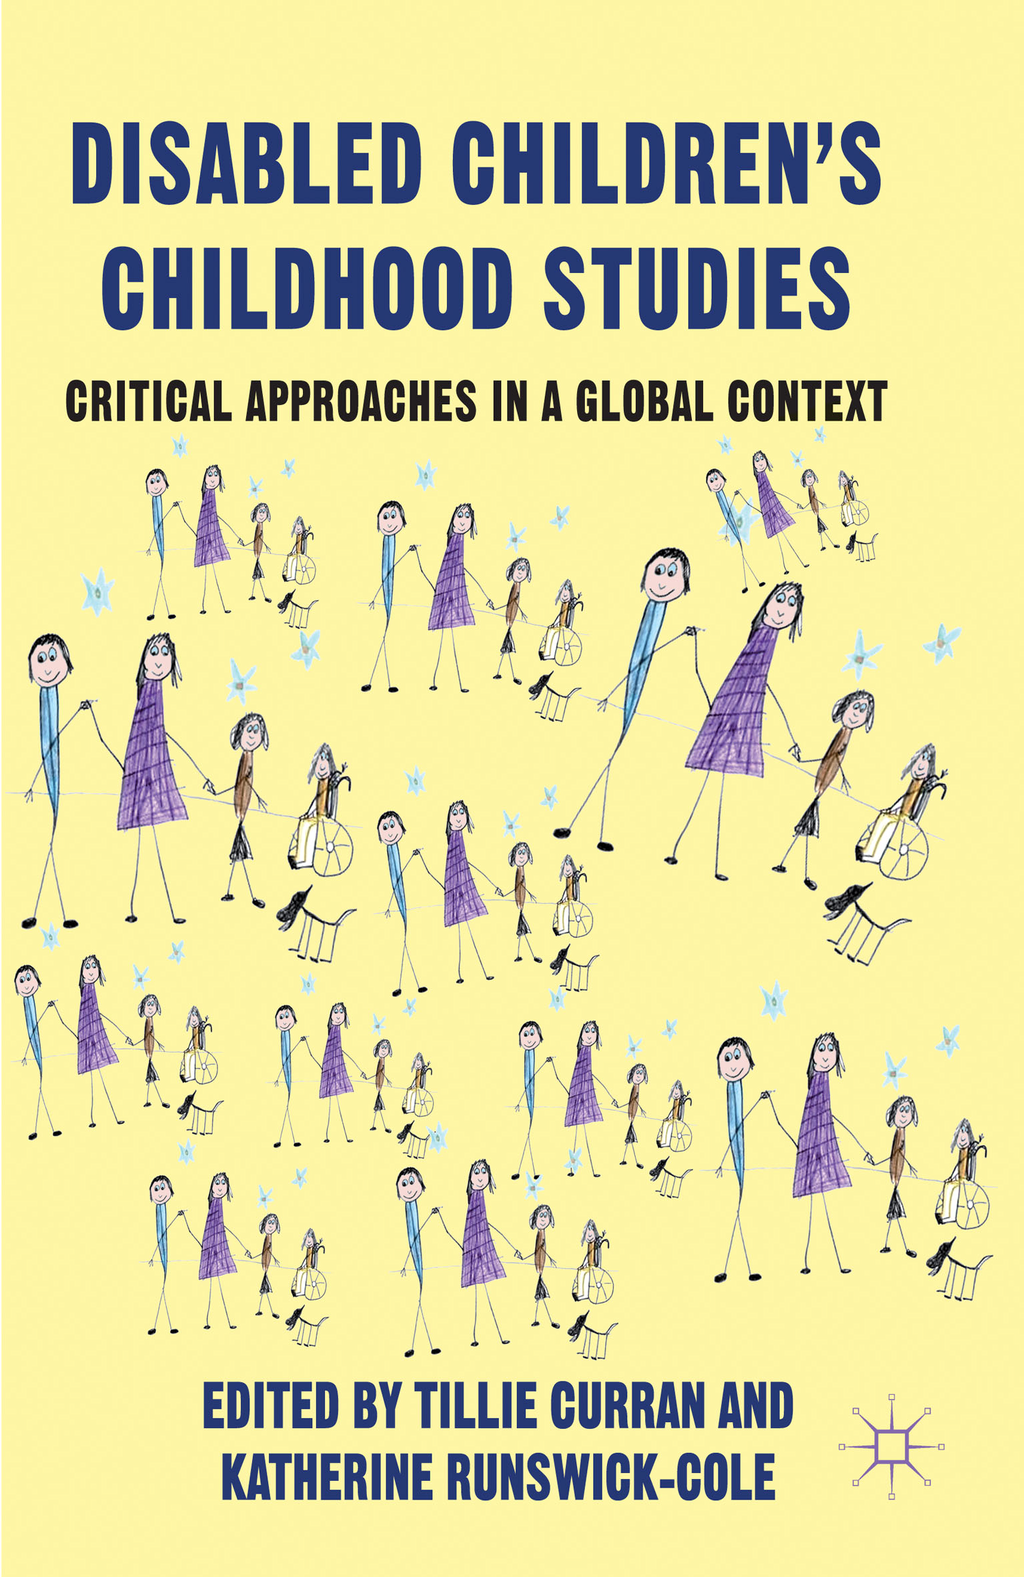 Disabled Children's Childhood Studies Critical Approaches in a Global Context